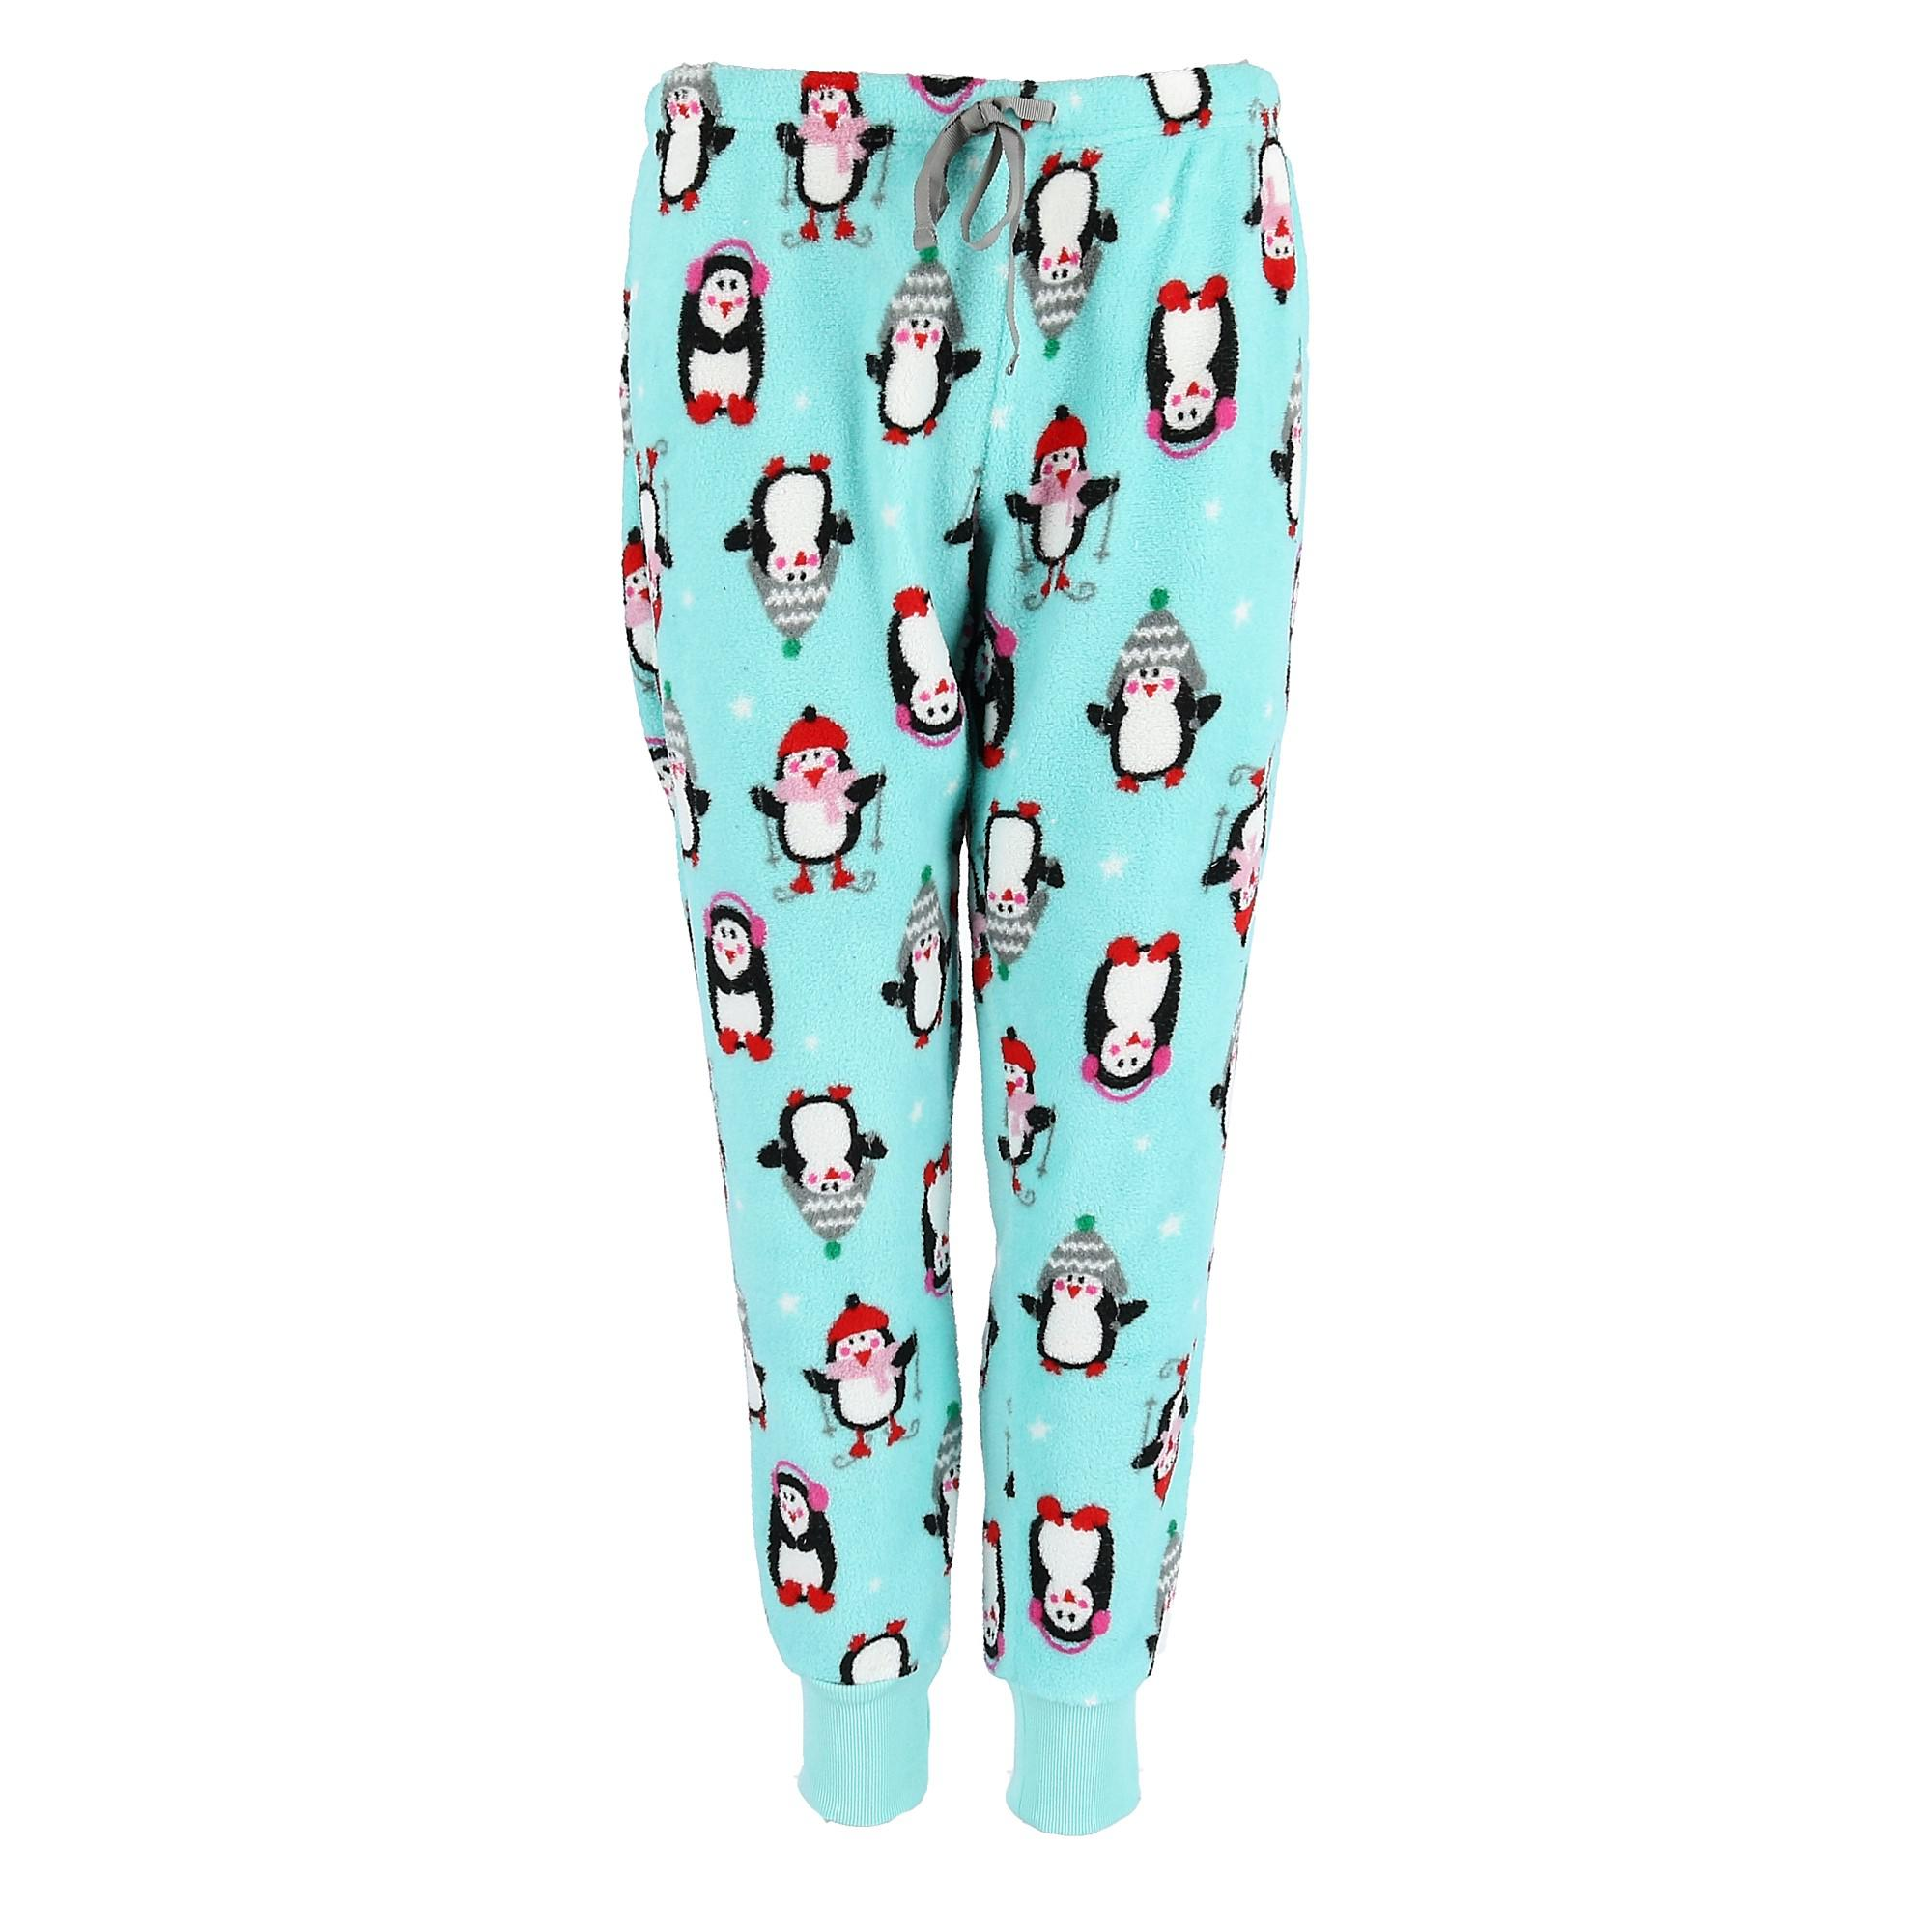 PJ Couture Women's Patterned Jogger Pajama Pants - image 2 of 2